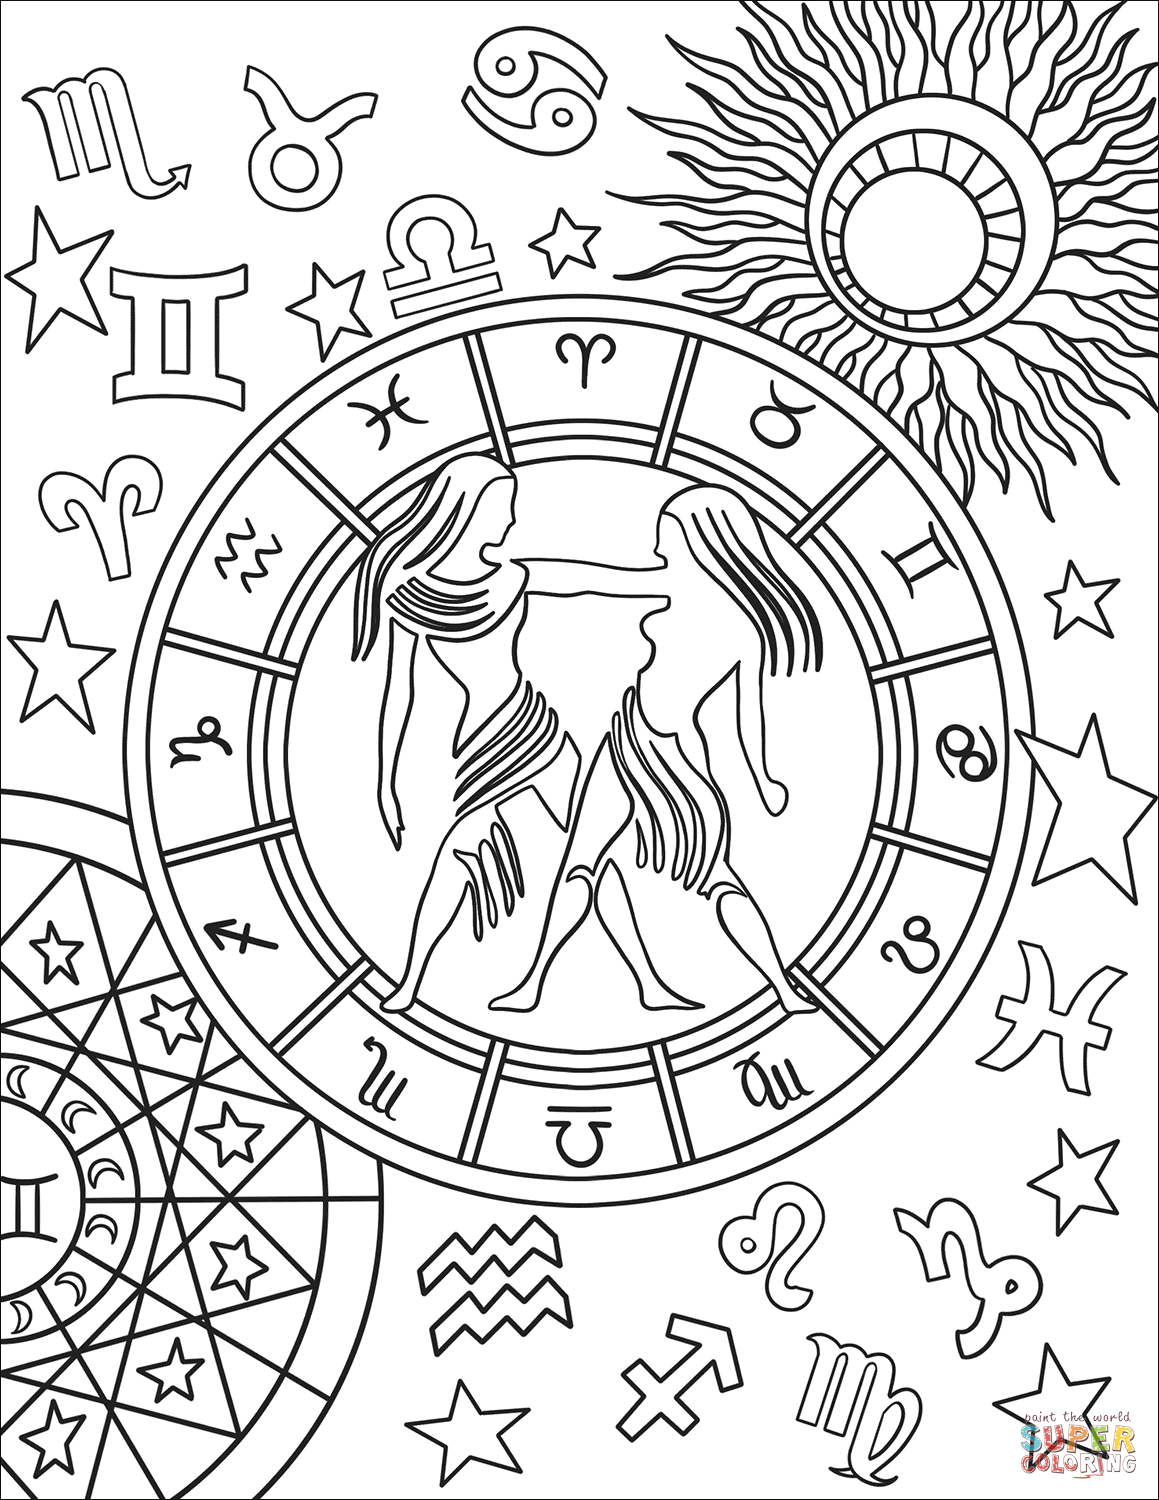 zodiac signs coloring pages zodiac sign coloring pages 12 printable zodiac coloring zodiac coloring pages signs